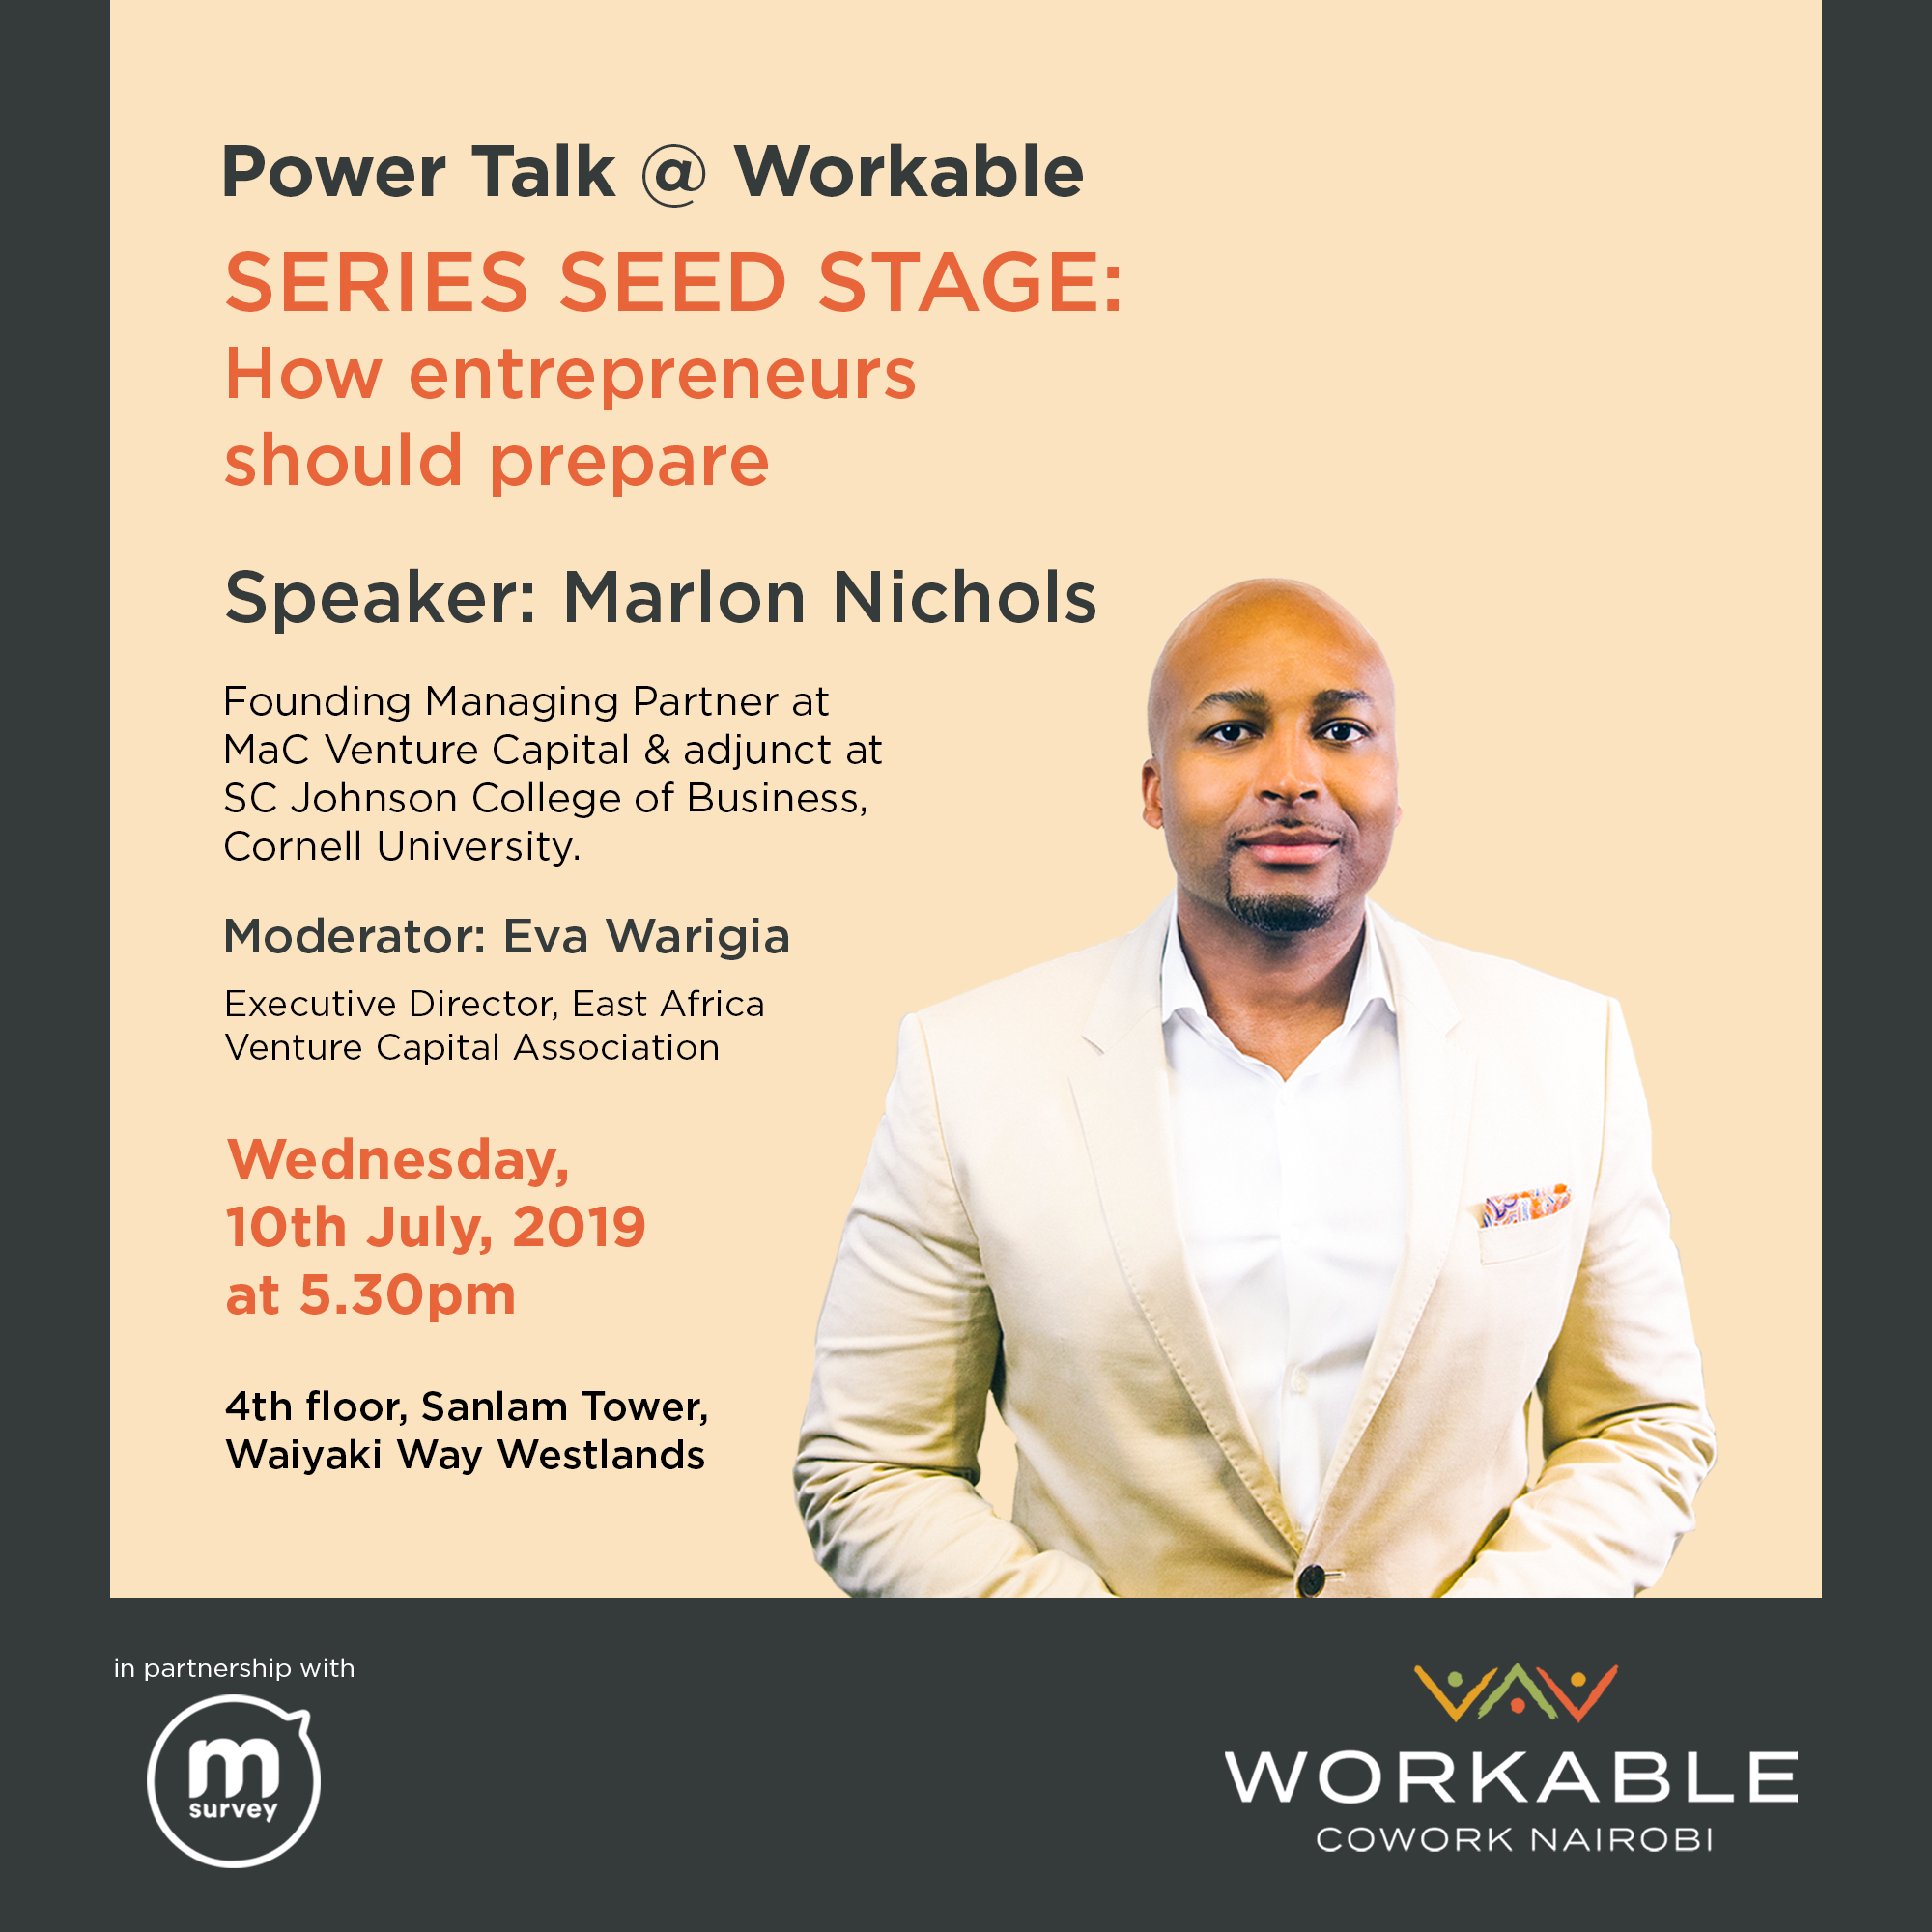 Power Talk @ Workable with mSurvey (2).jpg